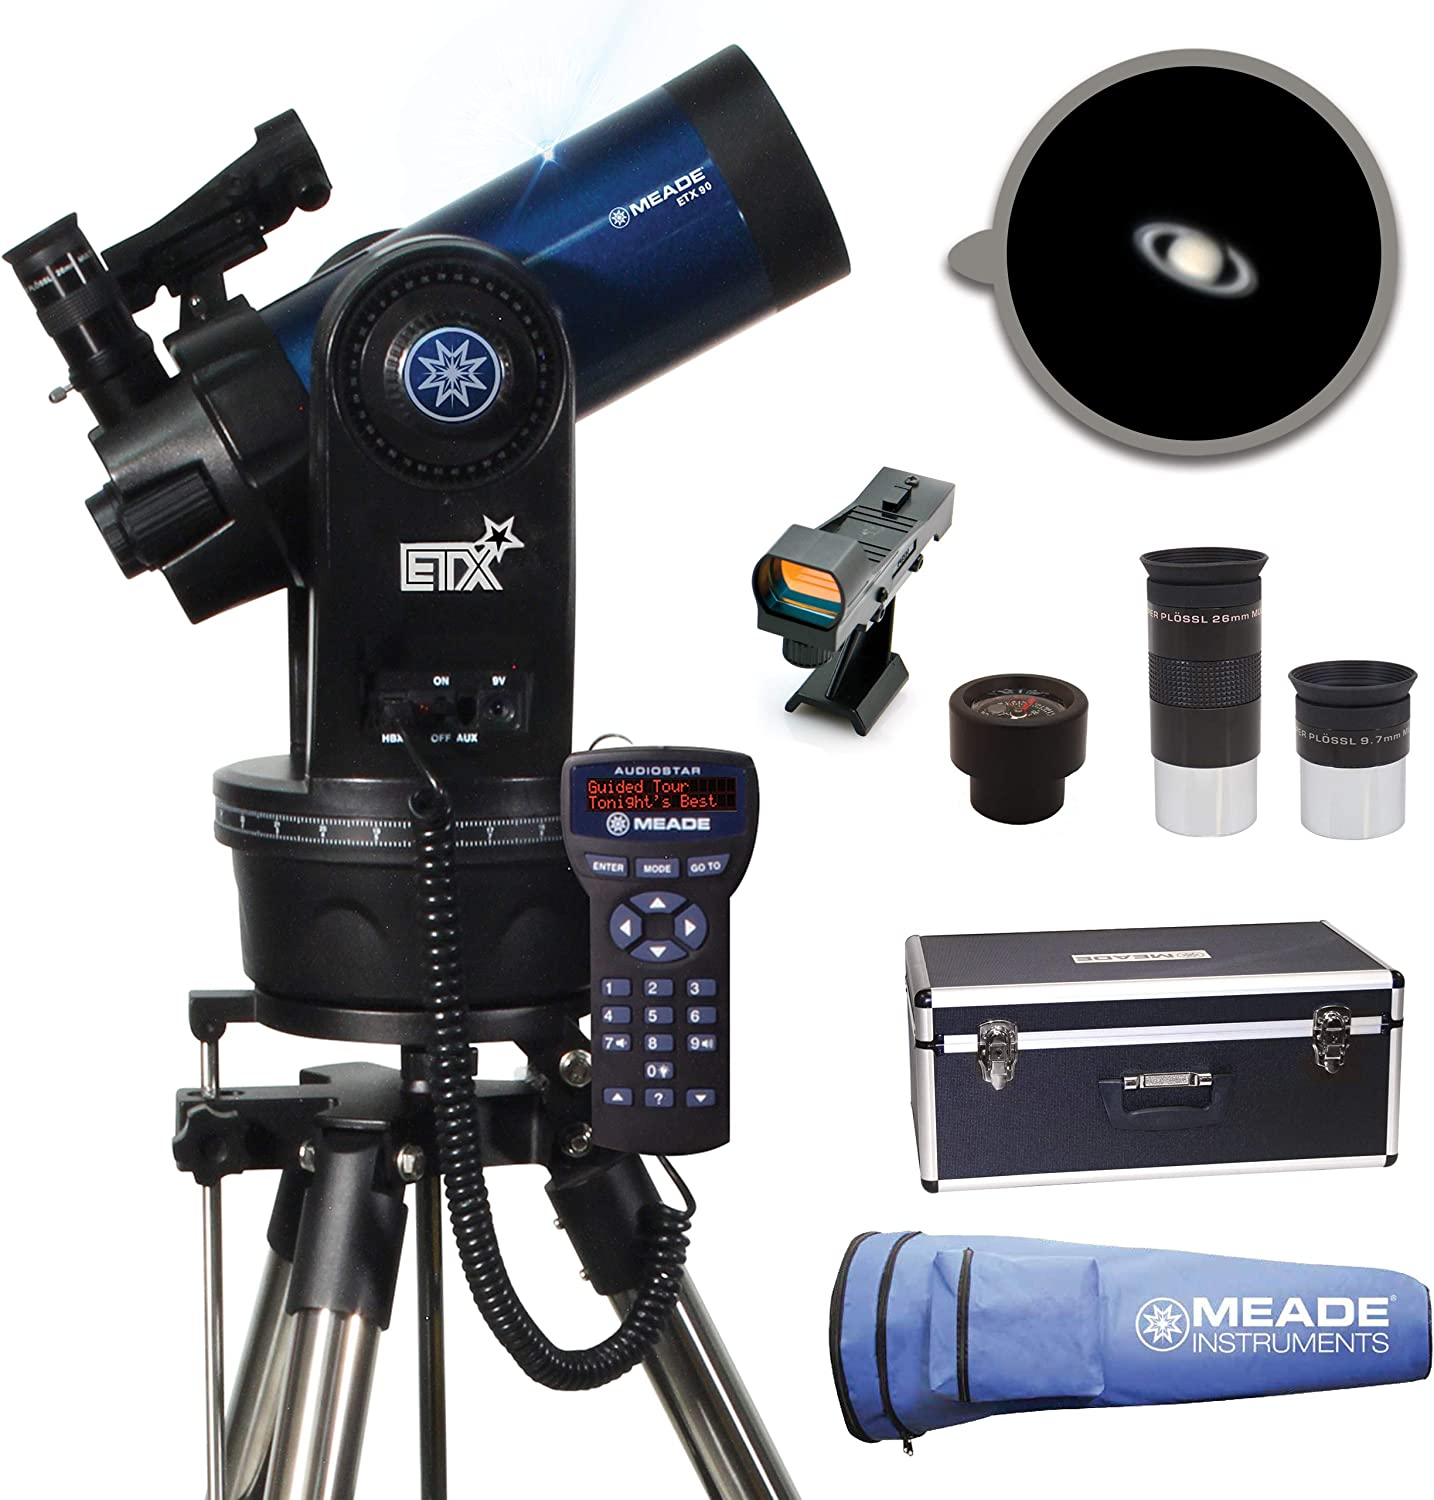 Meade Instruments 205004 ETX90 Observer Maksutov-Cassegrain Telescope with Tripod, Eyepieces, and Hand Carry Case,Blue